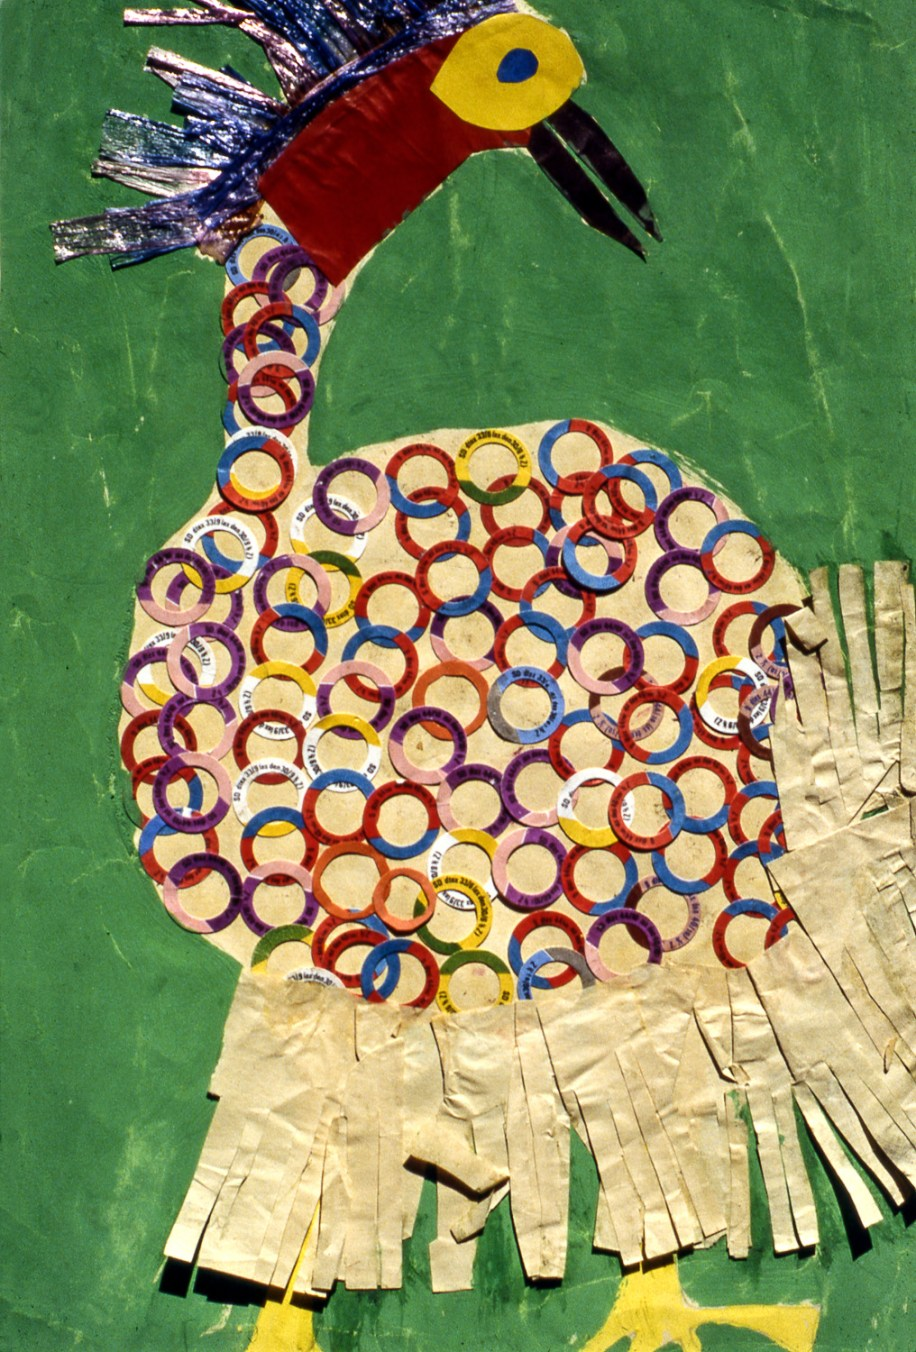 Child's collage image of a turkey